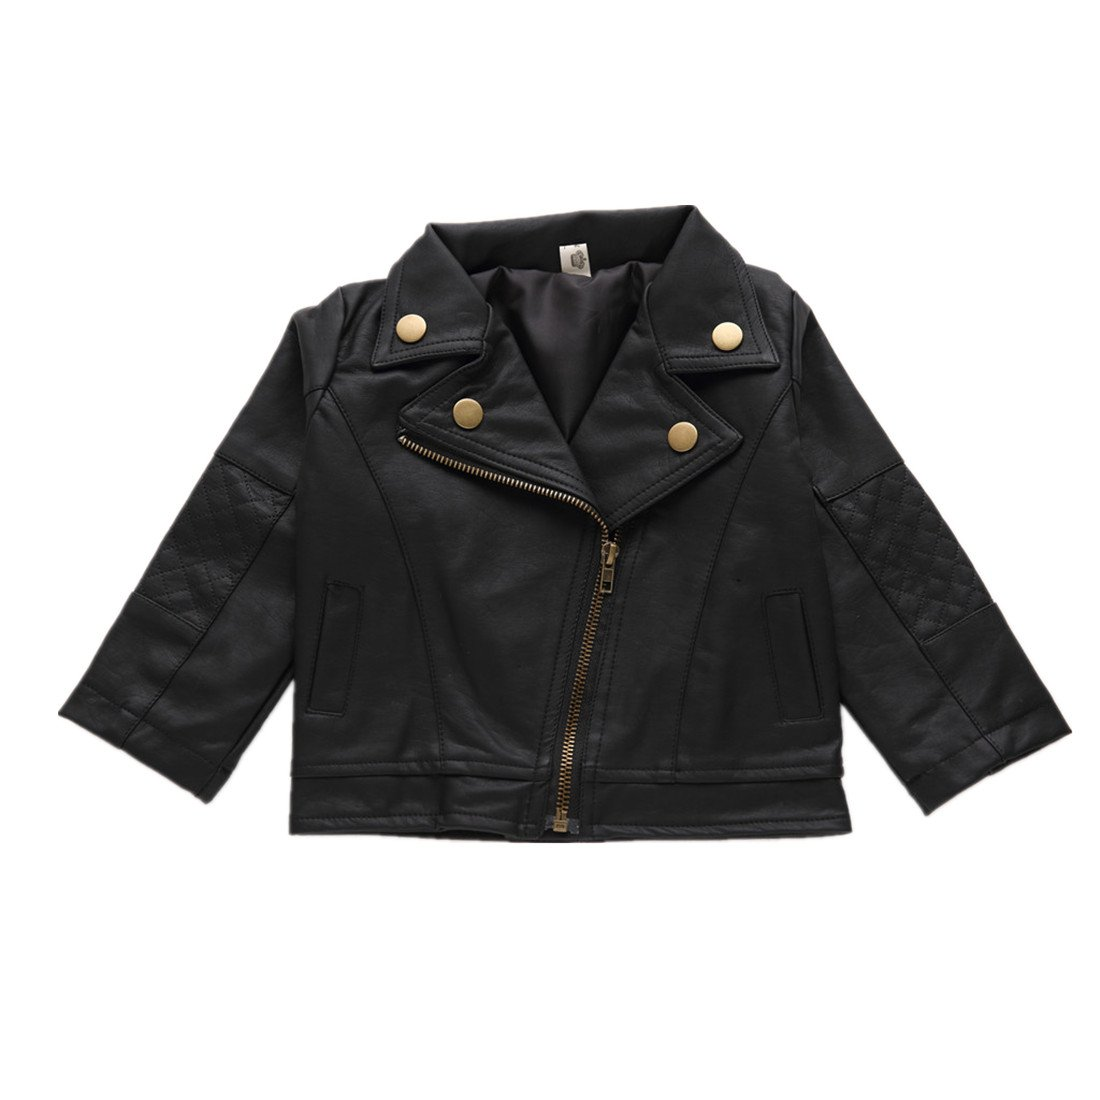 Top 10 wholesale Jacket Lapel Styles - Chinabrands.com 440eb0d79